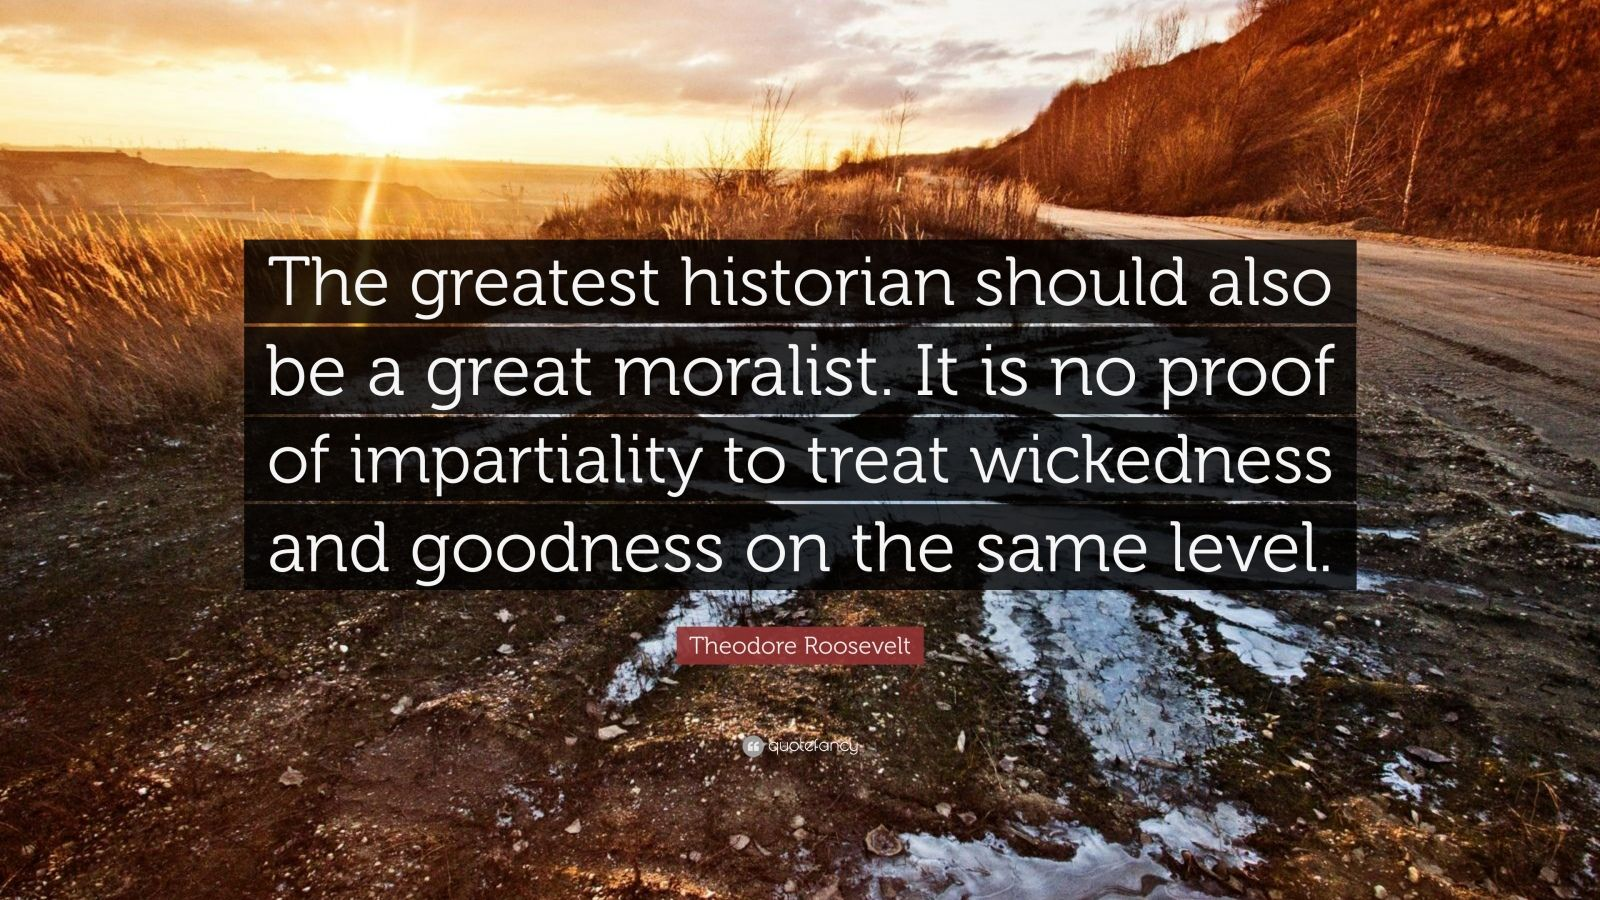 """Theodore Roosevelt Quote: """"The greatest historian should also be a great moralist. It is no proof of impartiality to treat wickedness and goodness on the same level."""""""